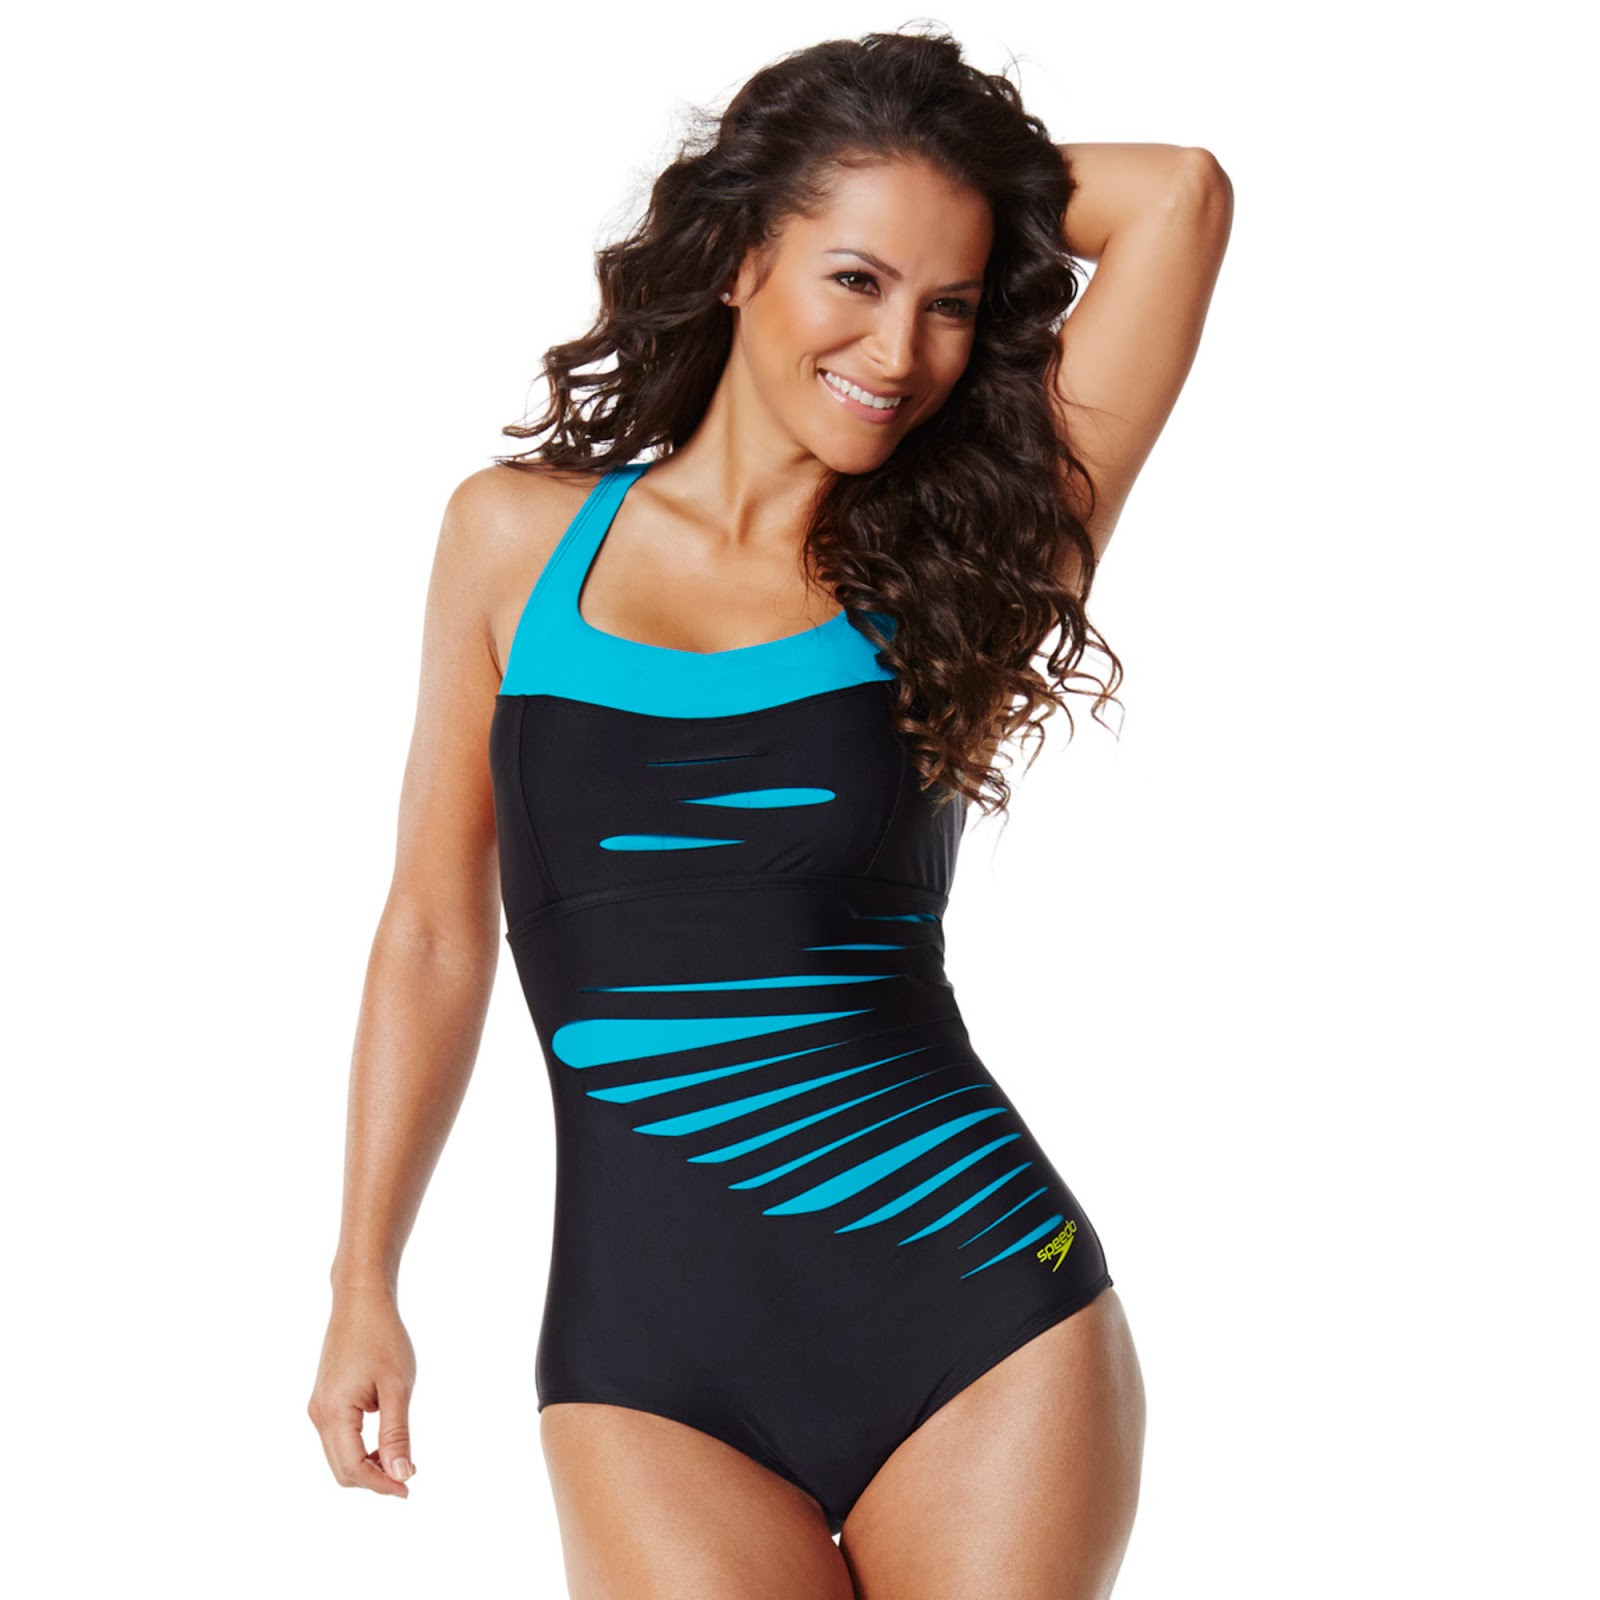 6e3ee74181 The Zumba Mommy  The Speedo swimwear collection for Zumba